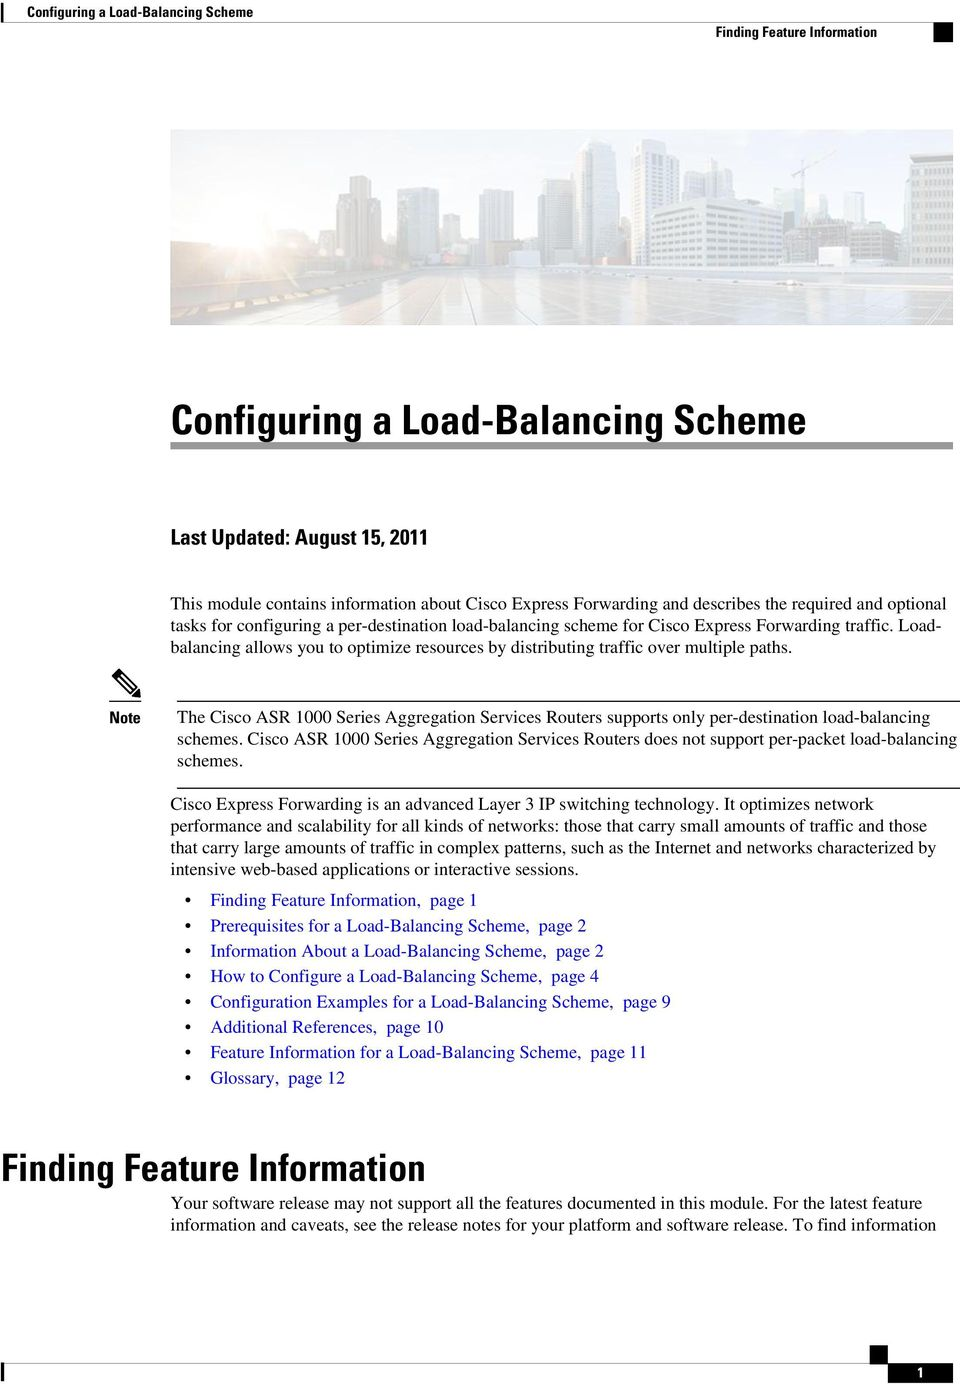 Loadbalancing allows you to optimize resources by distributing traffic over multiple paths.